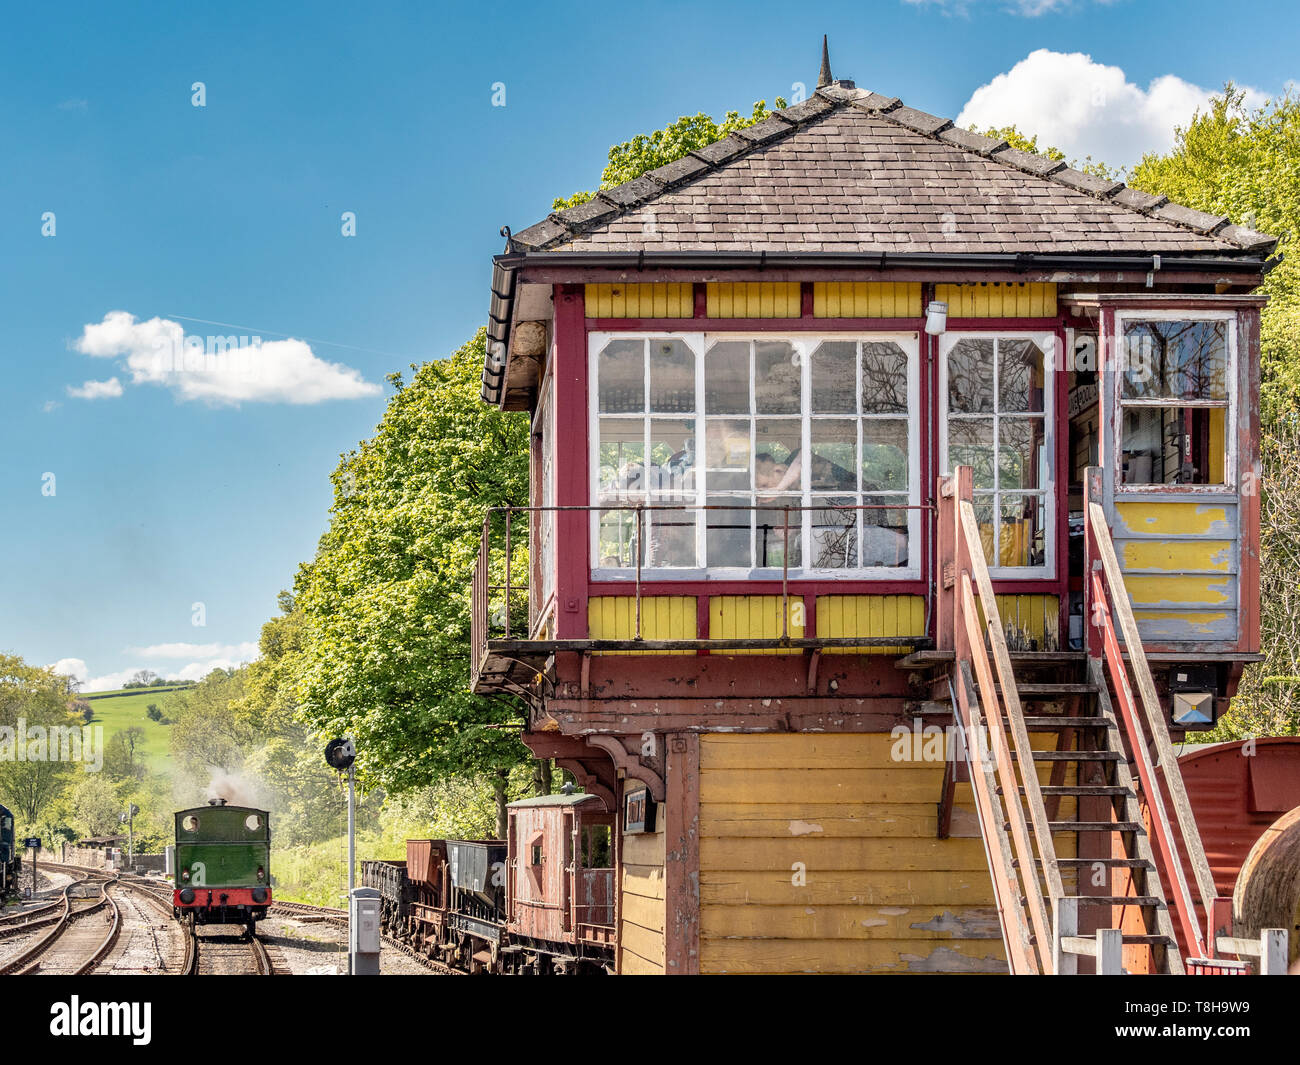 Signal box and Sir Robert Alpine and Sons, Engine No. 88. Bolton and Embsay steam railway. Bolton Station, Yorkshire Dales, UK. - Stock Image